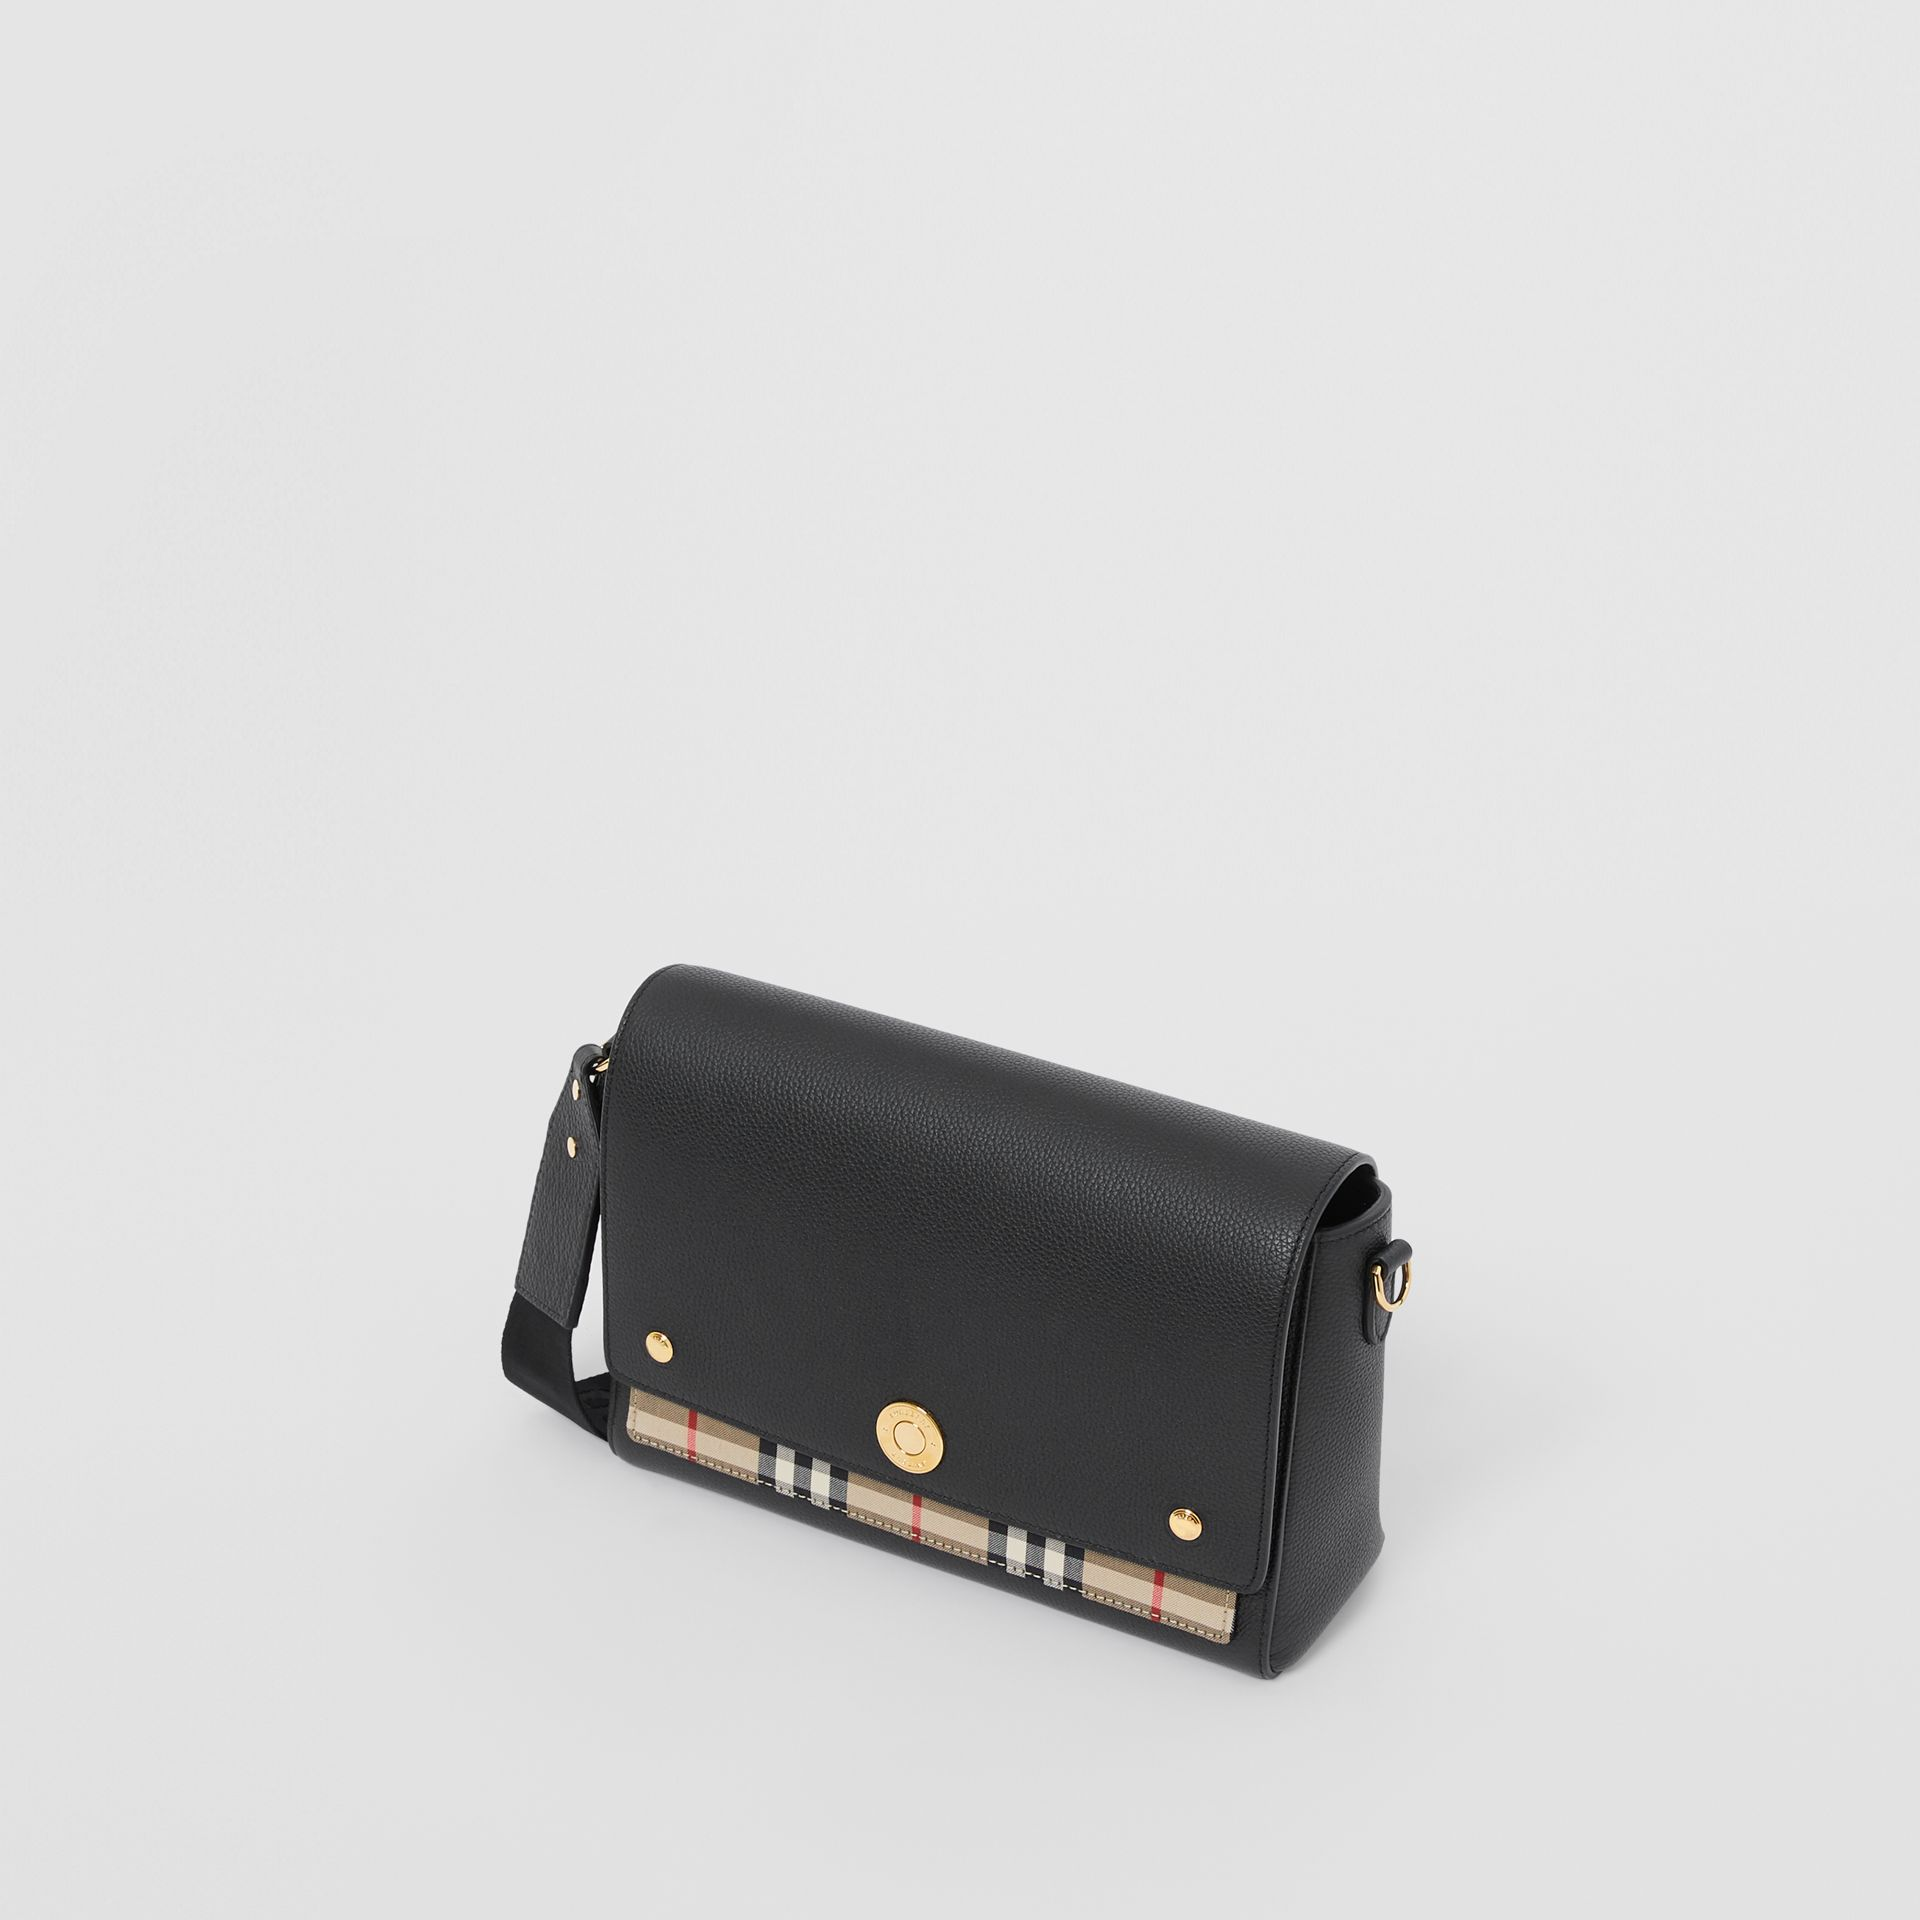 Leather and Vintage Check Note Crossbody Bag in Black - Women | Burberry - gallery image 3